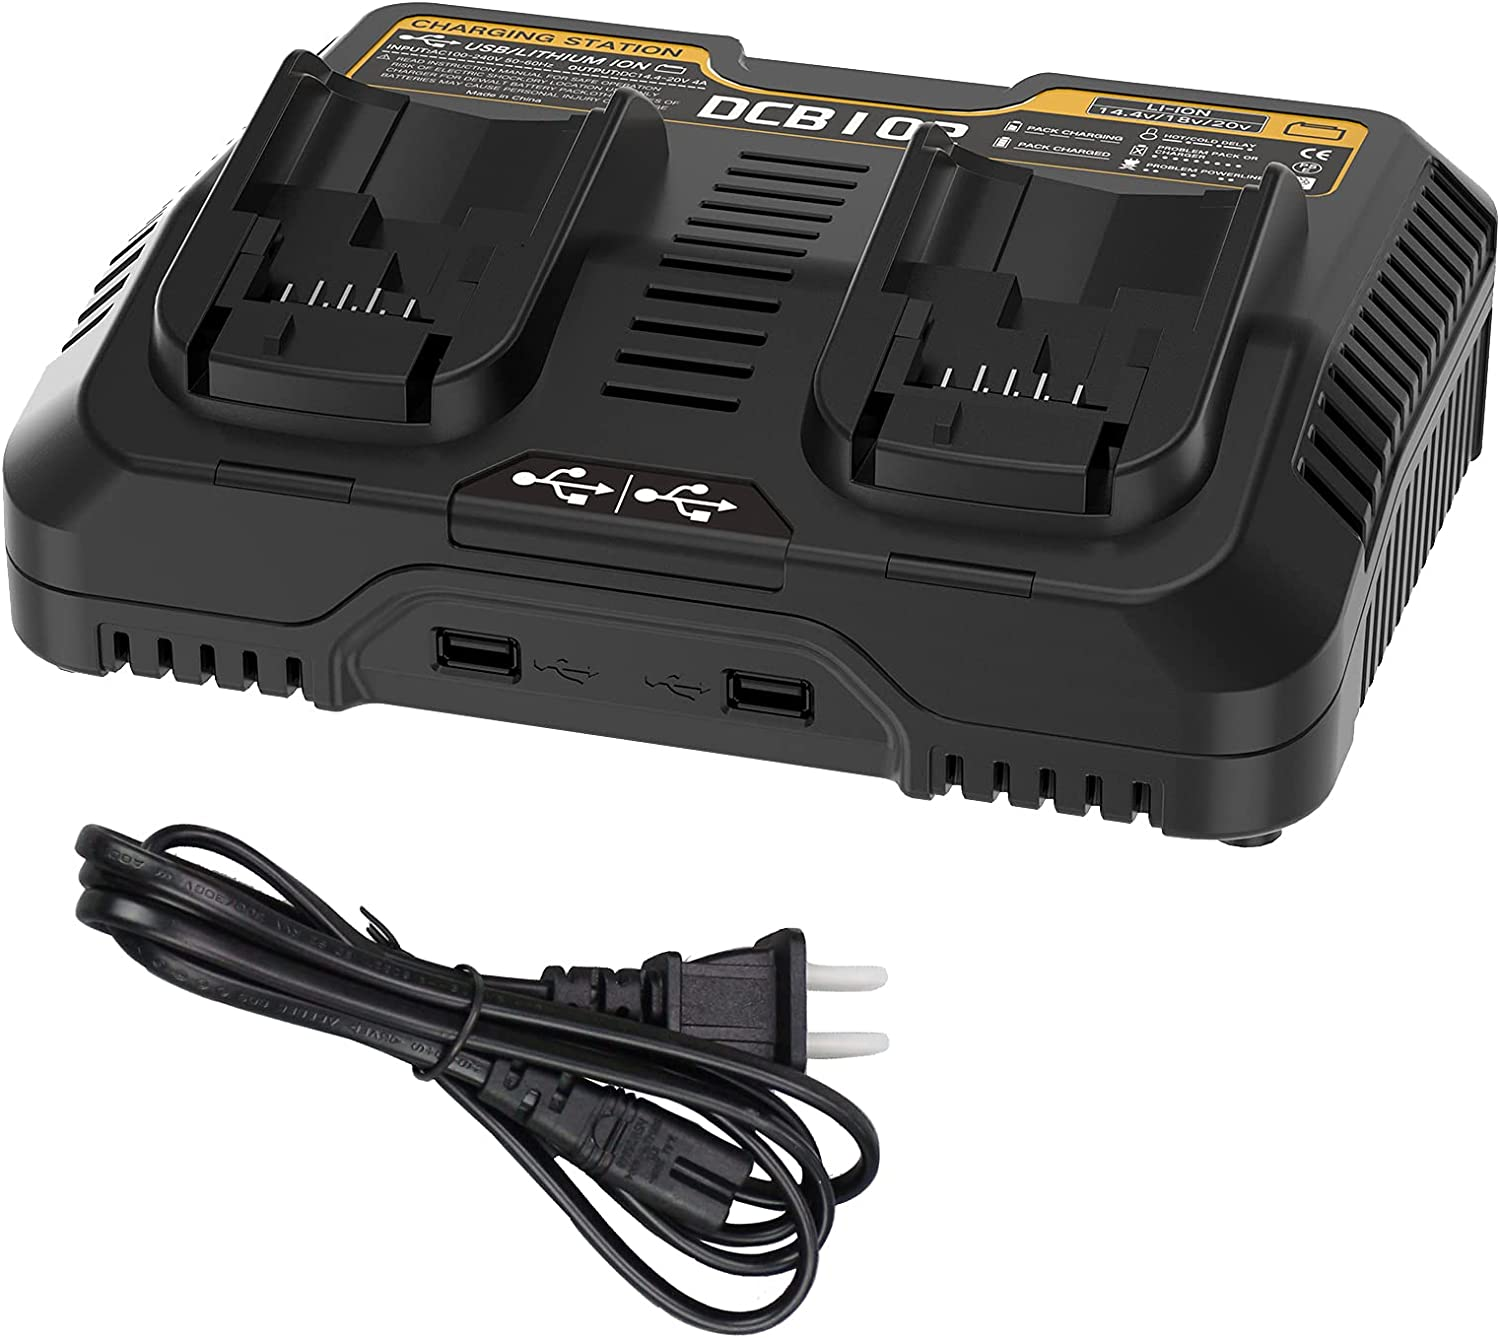 Super Special SALE held 4A DCB102 Dual Port Charger DCB112 Bombing new work for Replacement Dewalt DCB118